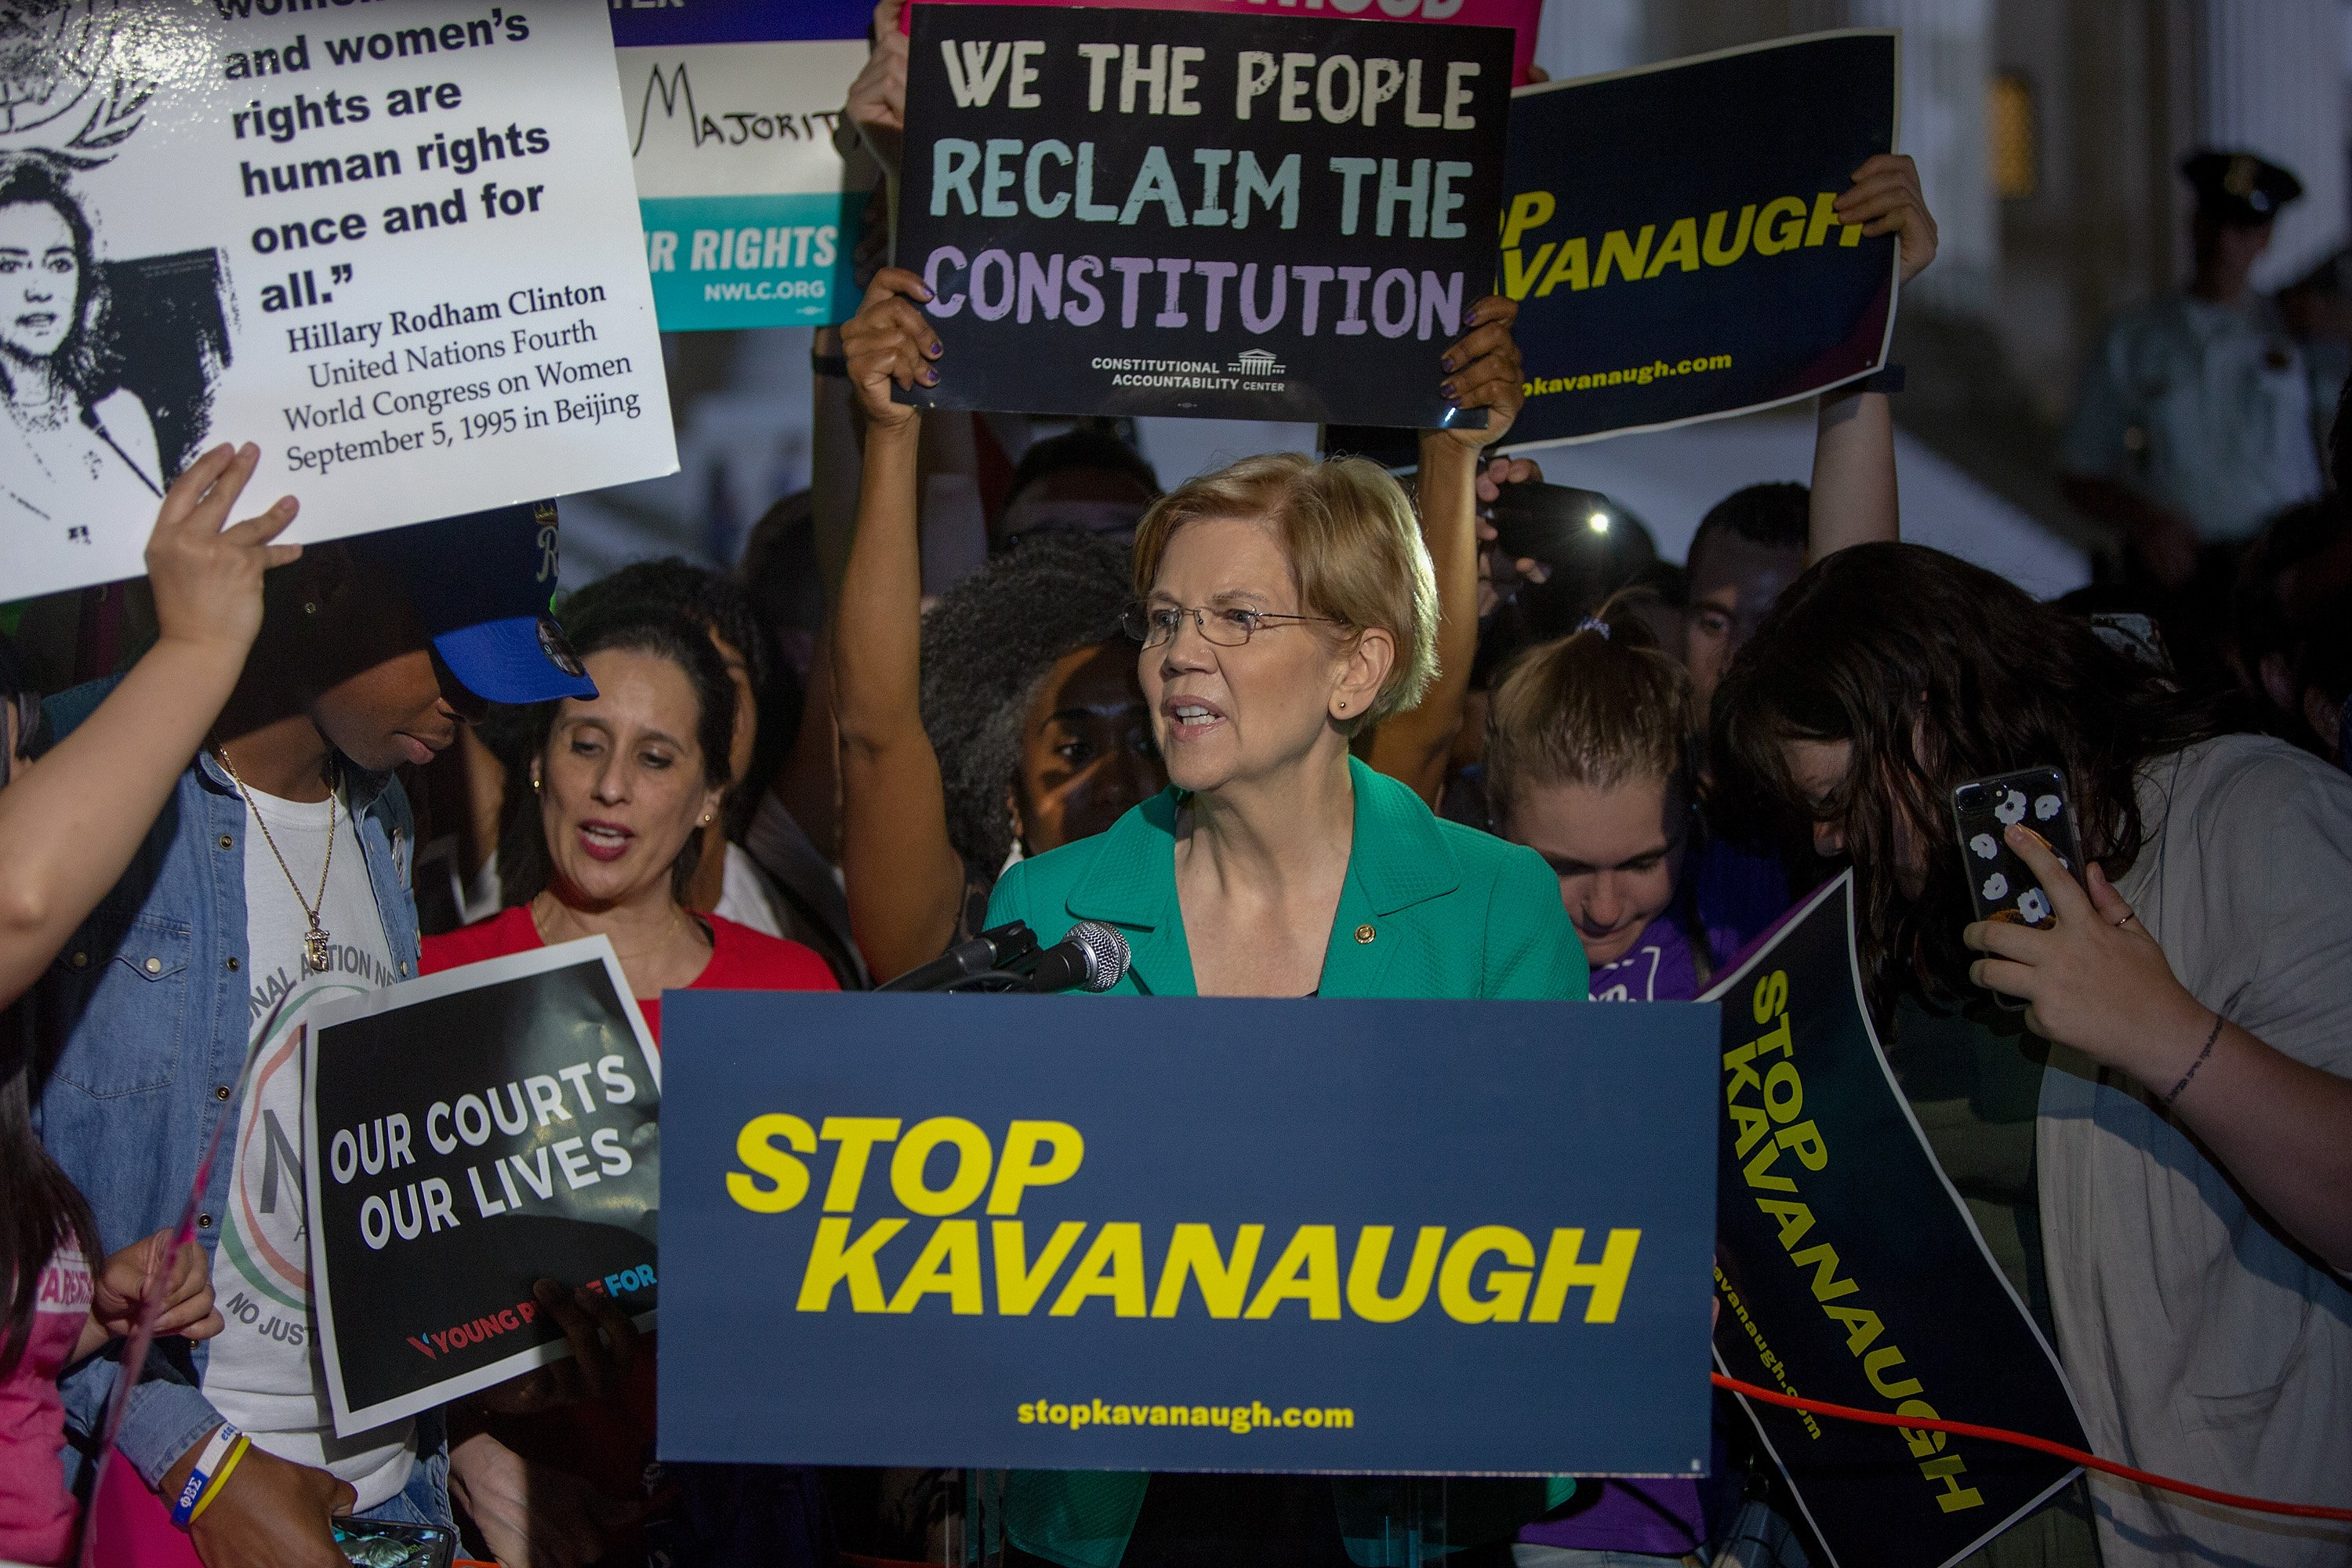 Senator Elizabeth Warren (D-MA) speaks to protesters in front of the U.S. Supreme Court on July 9, 2018 in Washington, DC. Tasos Katopodis/Getty Images